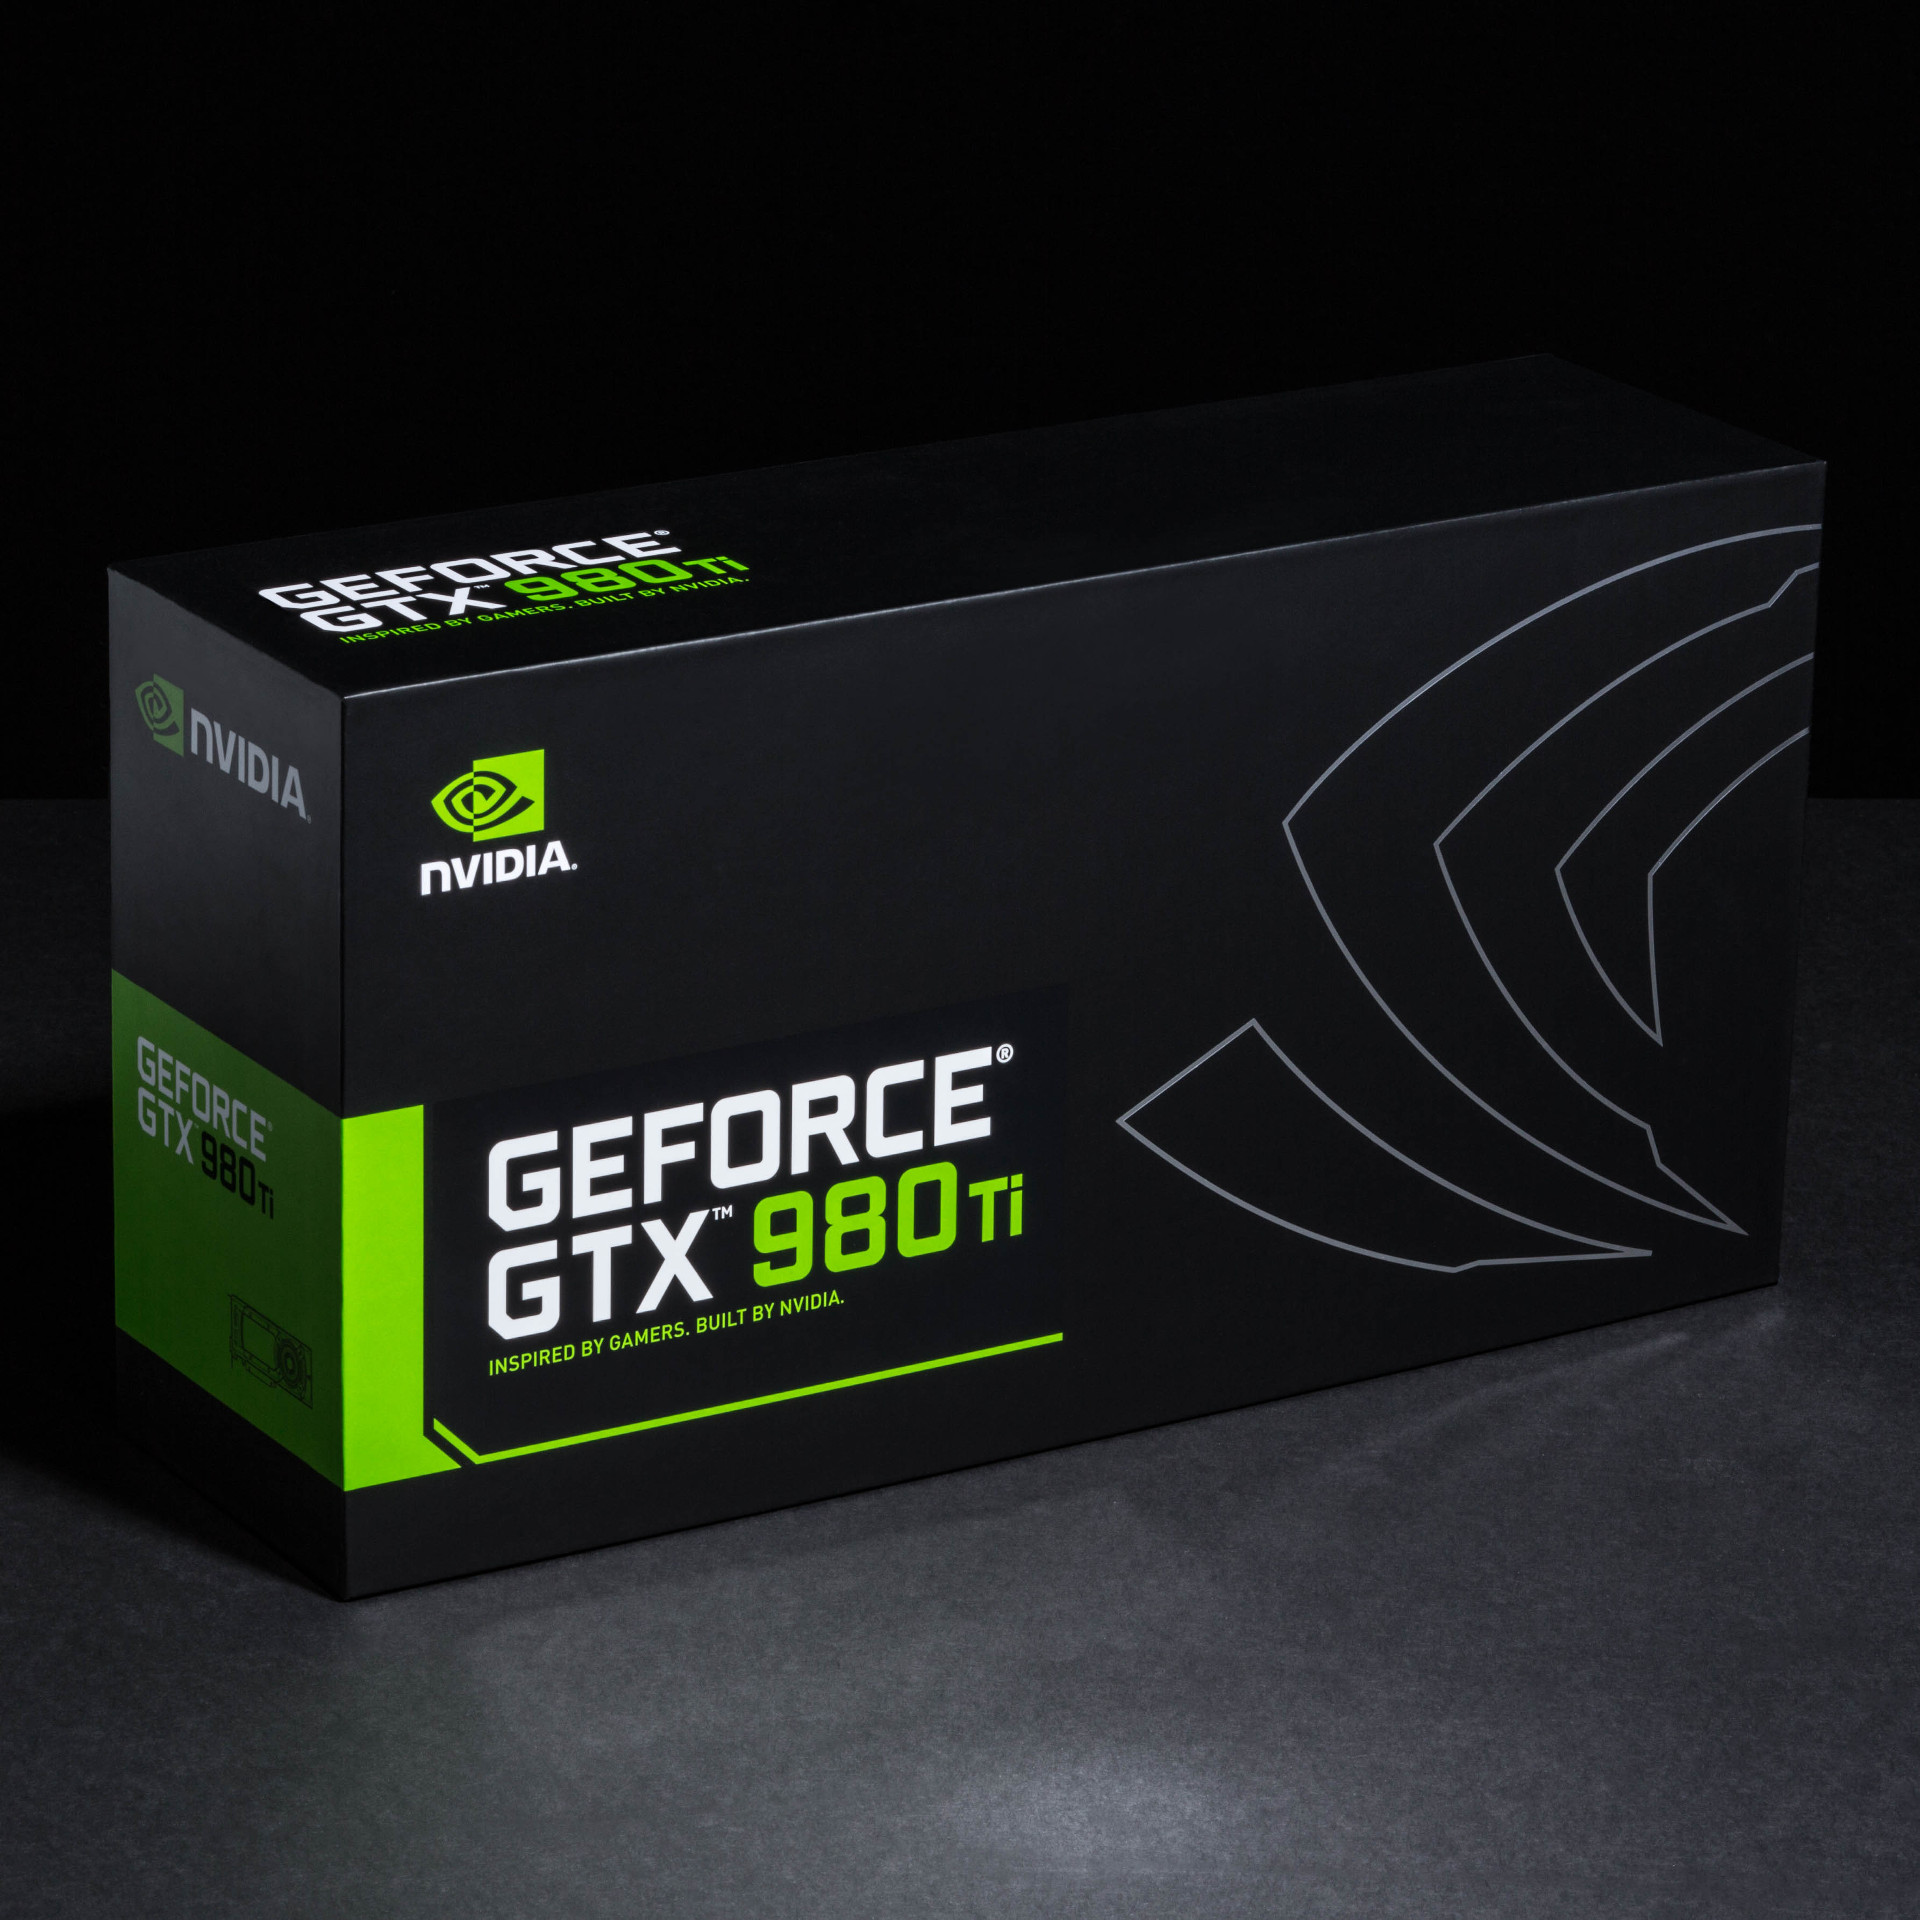 nvidia-geforce-gtx-980-ti-box-closed